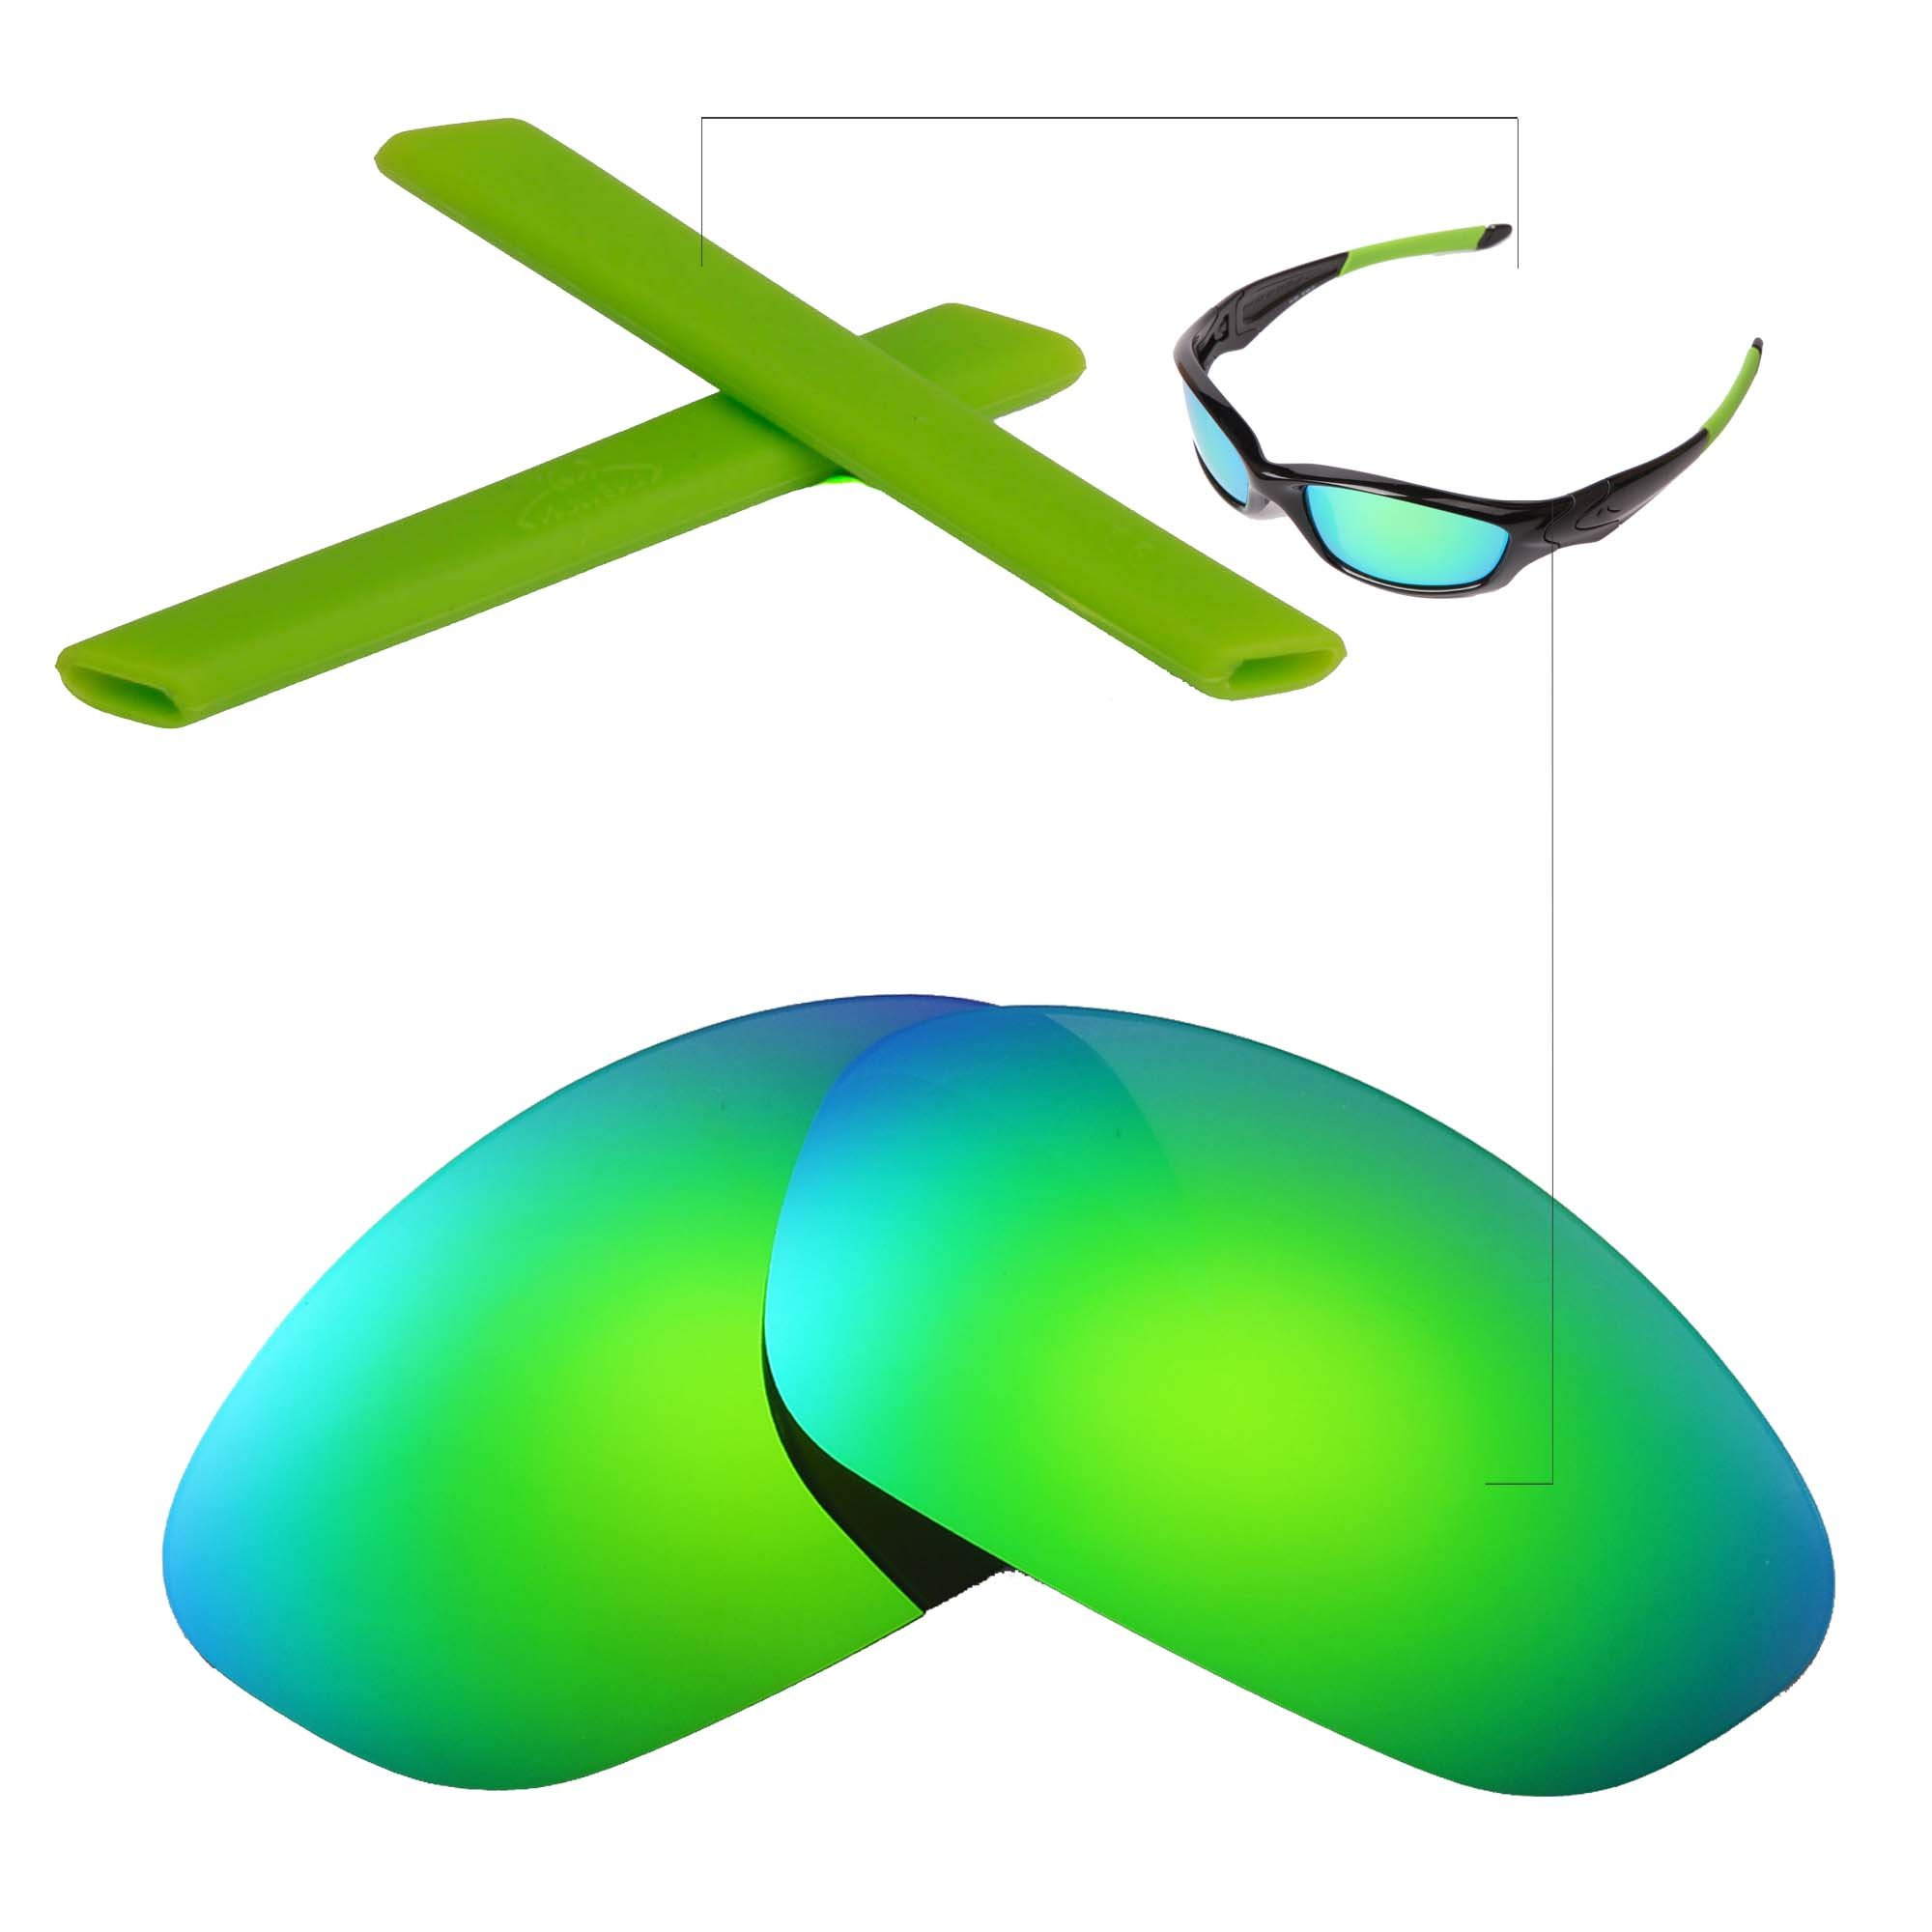 Walleva Polarized Replacement Lenses + Rubber For Oakley Straight Jacket - Multiple Options Available (Emerald Polarized Lenses + Green Rubber)